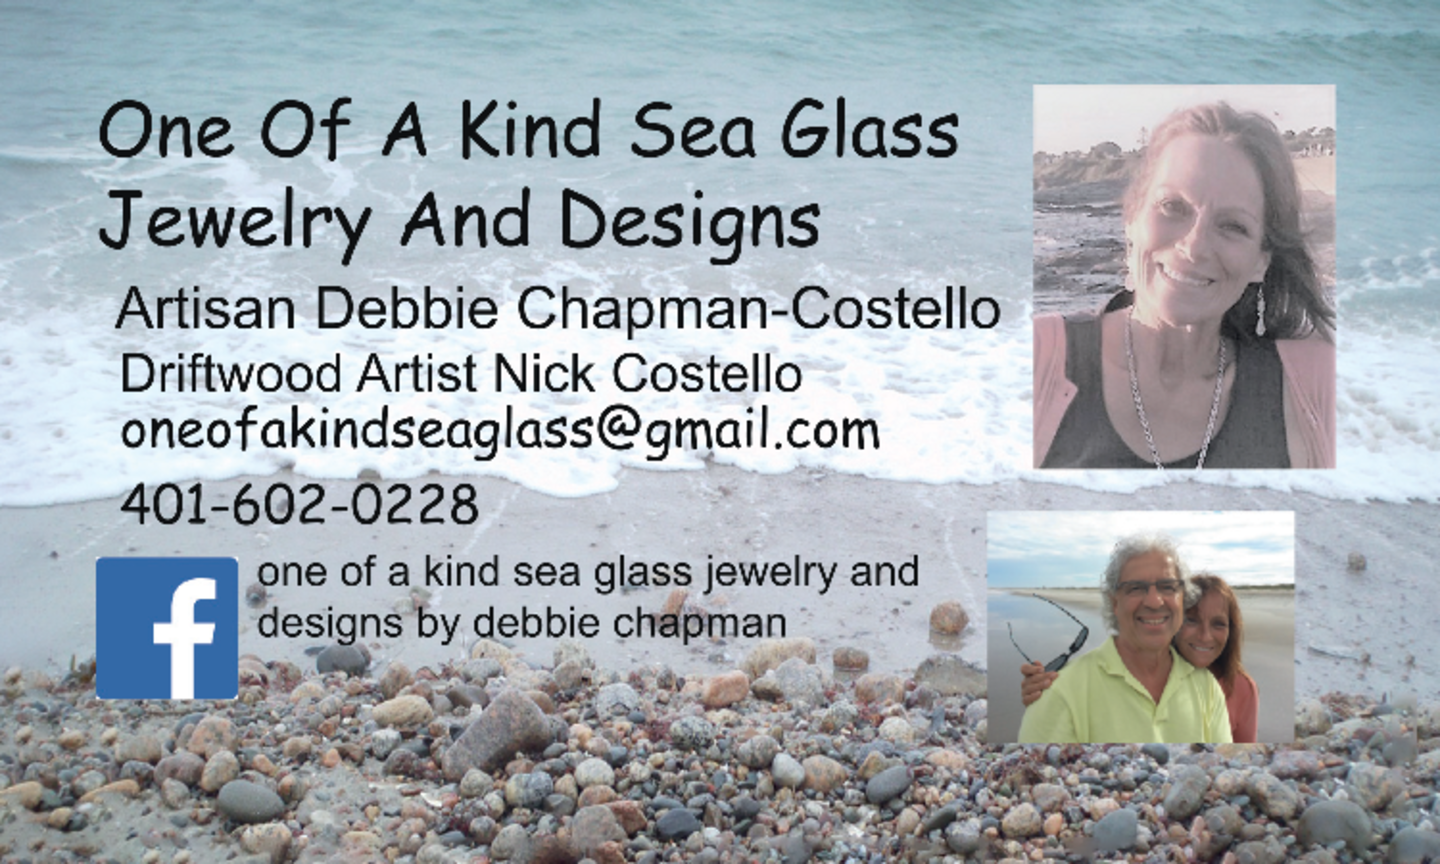 One Of A Kind Sea Glass Jewelry And Designs